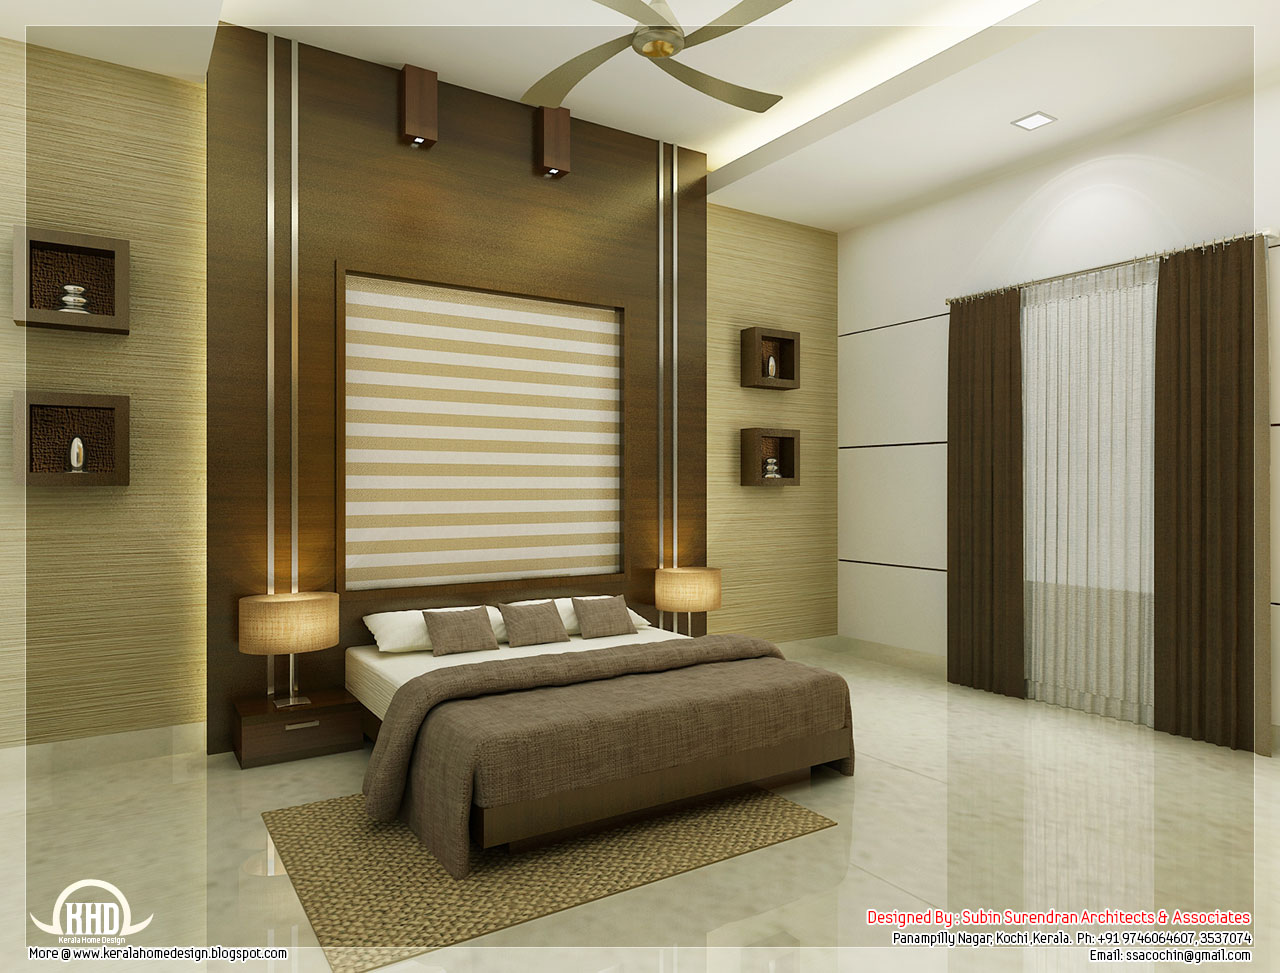 Beautiful bedroom interior designs by Subin Surendran Architects ...